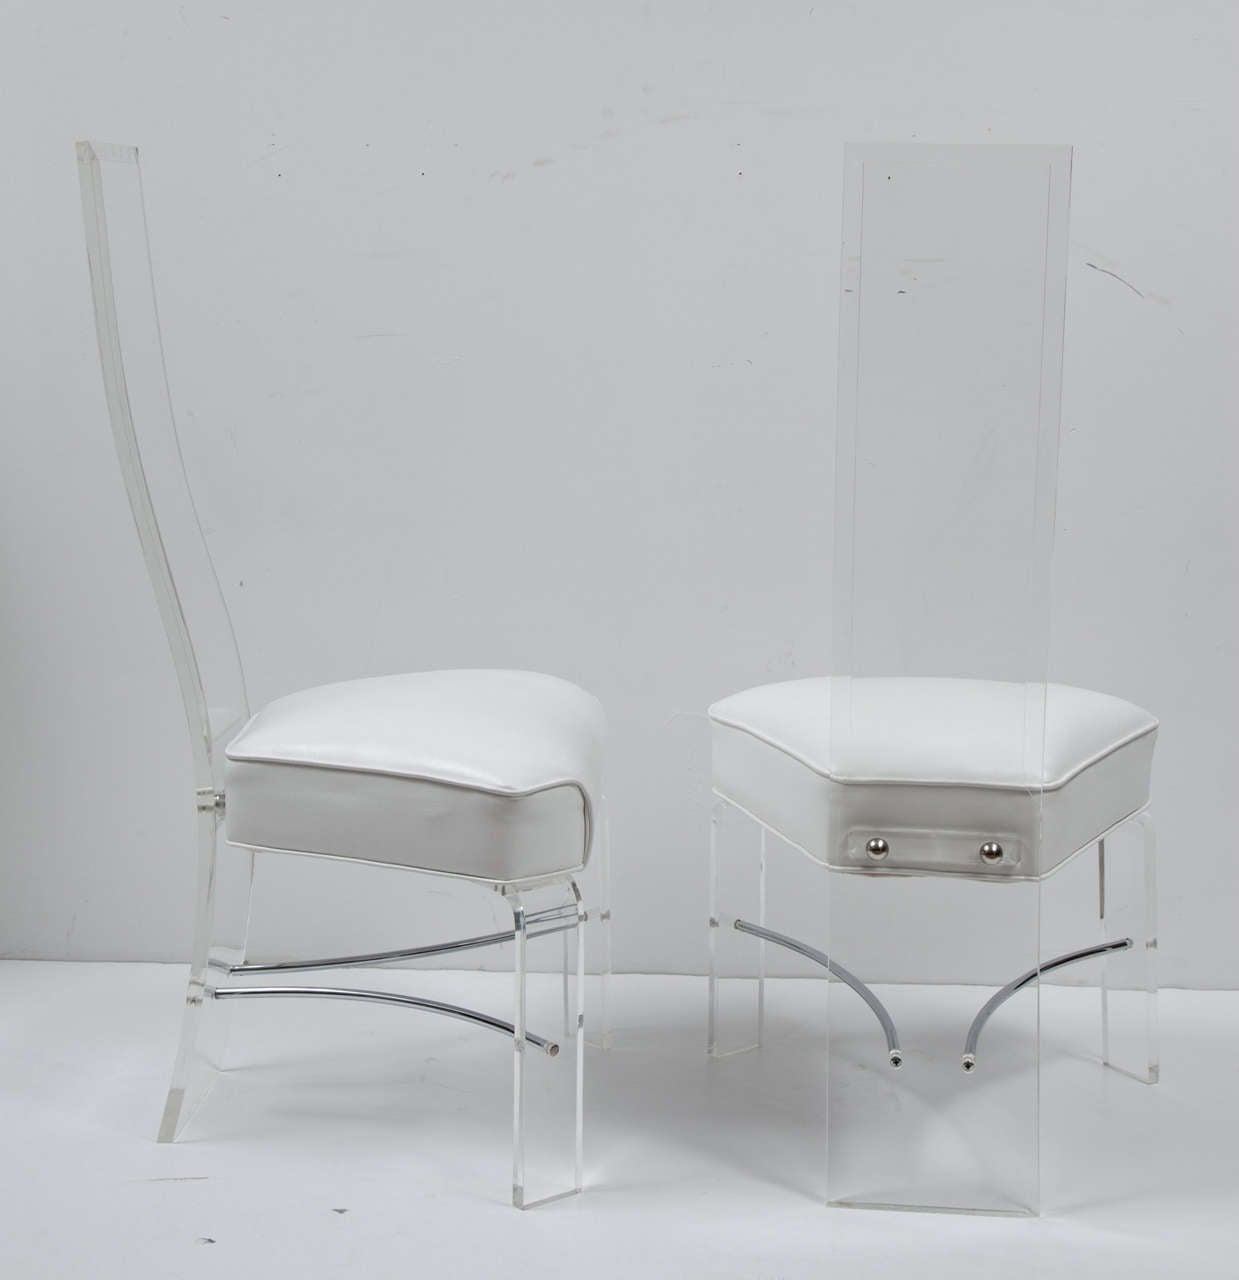 acrylic dining chair cedar adirondack chairs plans two lucite room at 1stdibs